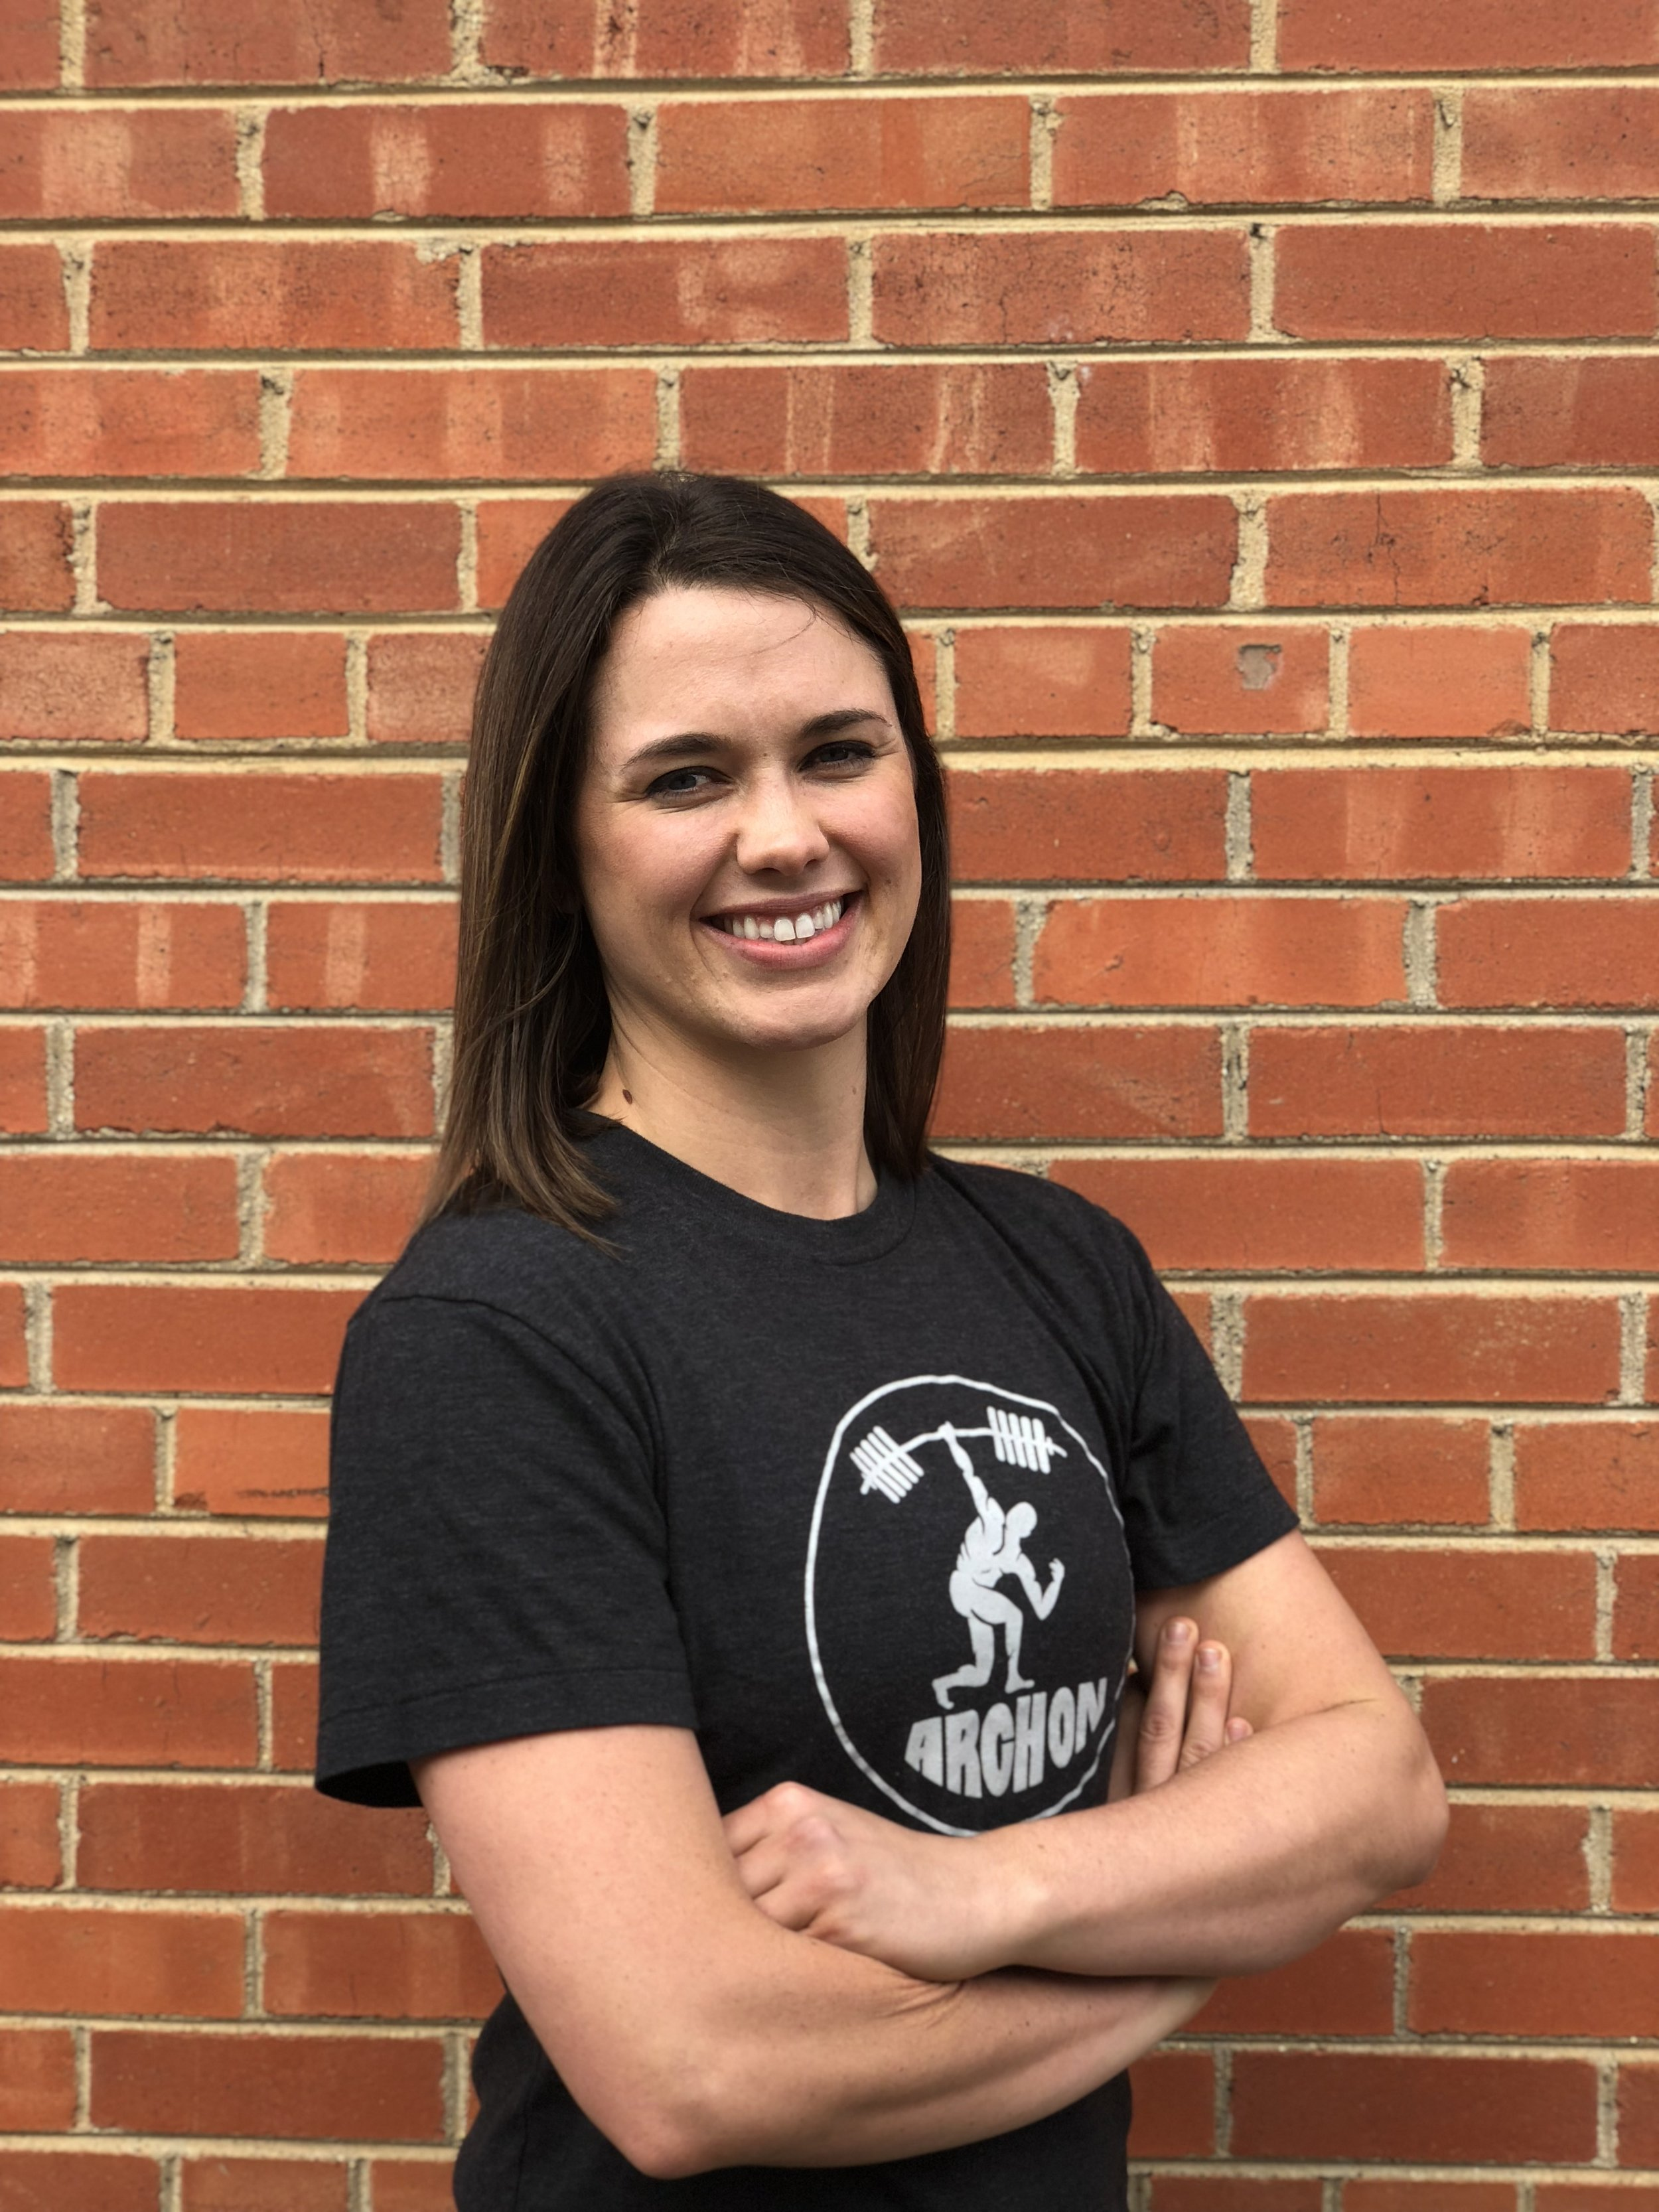 Jayla started CrossFit in 2015 when she moved to Dallas to work as an elementary art teacher. The challenging workouts were the perfect compliment to long, stressful days in the classroom, and helped to create more physical progress than the distance running she had been doing in the past. With the welcoming community and friends, she has participated in Crossfit and Weightlifting competitions. As a teacher, she wanted to grow her knowledge and share the experience of Crossfit, and received her CFL1 in 2017. Her goal is to give all of her students the excitement and confidence that comes with reaching their goals.